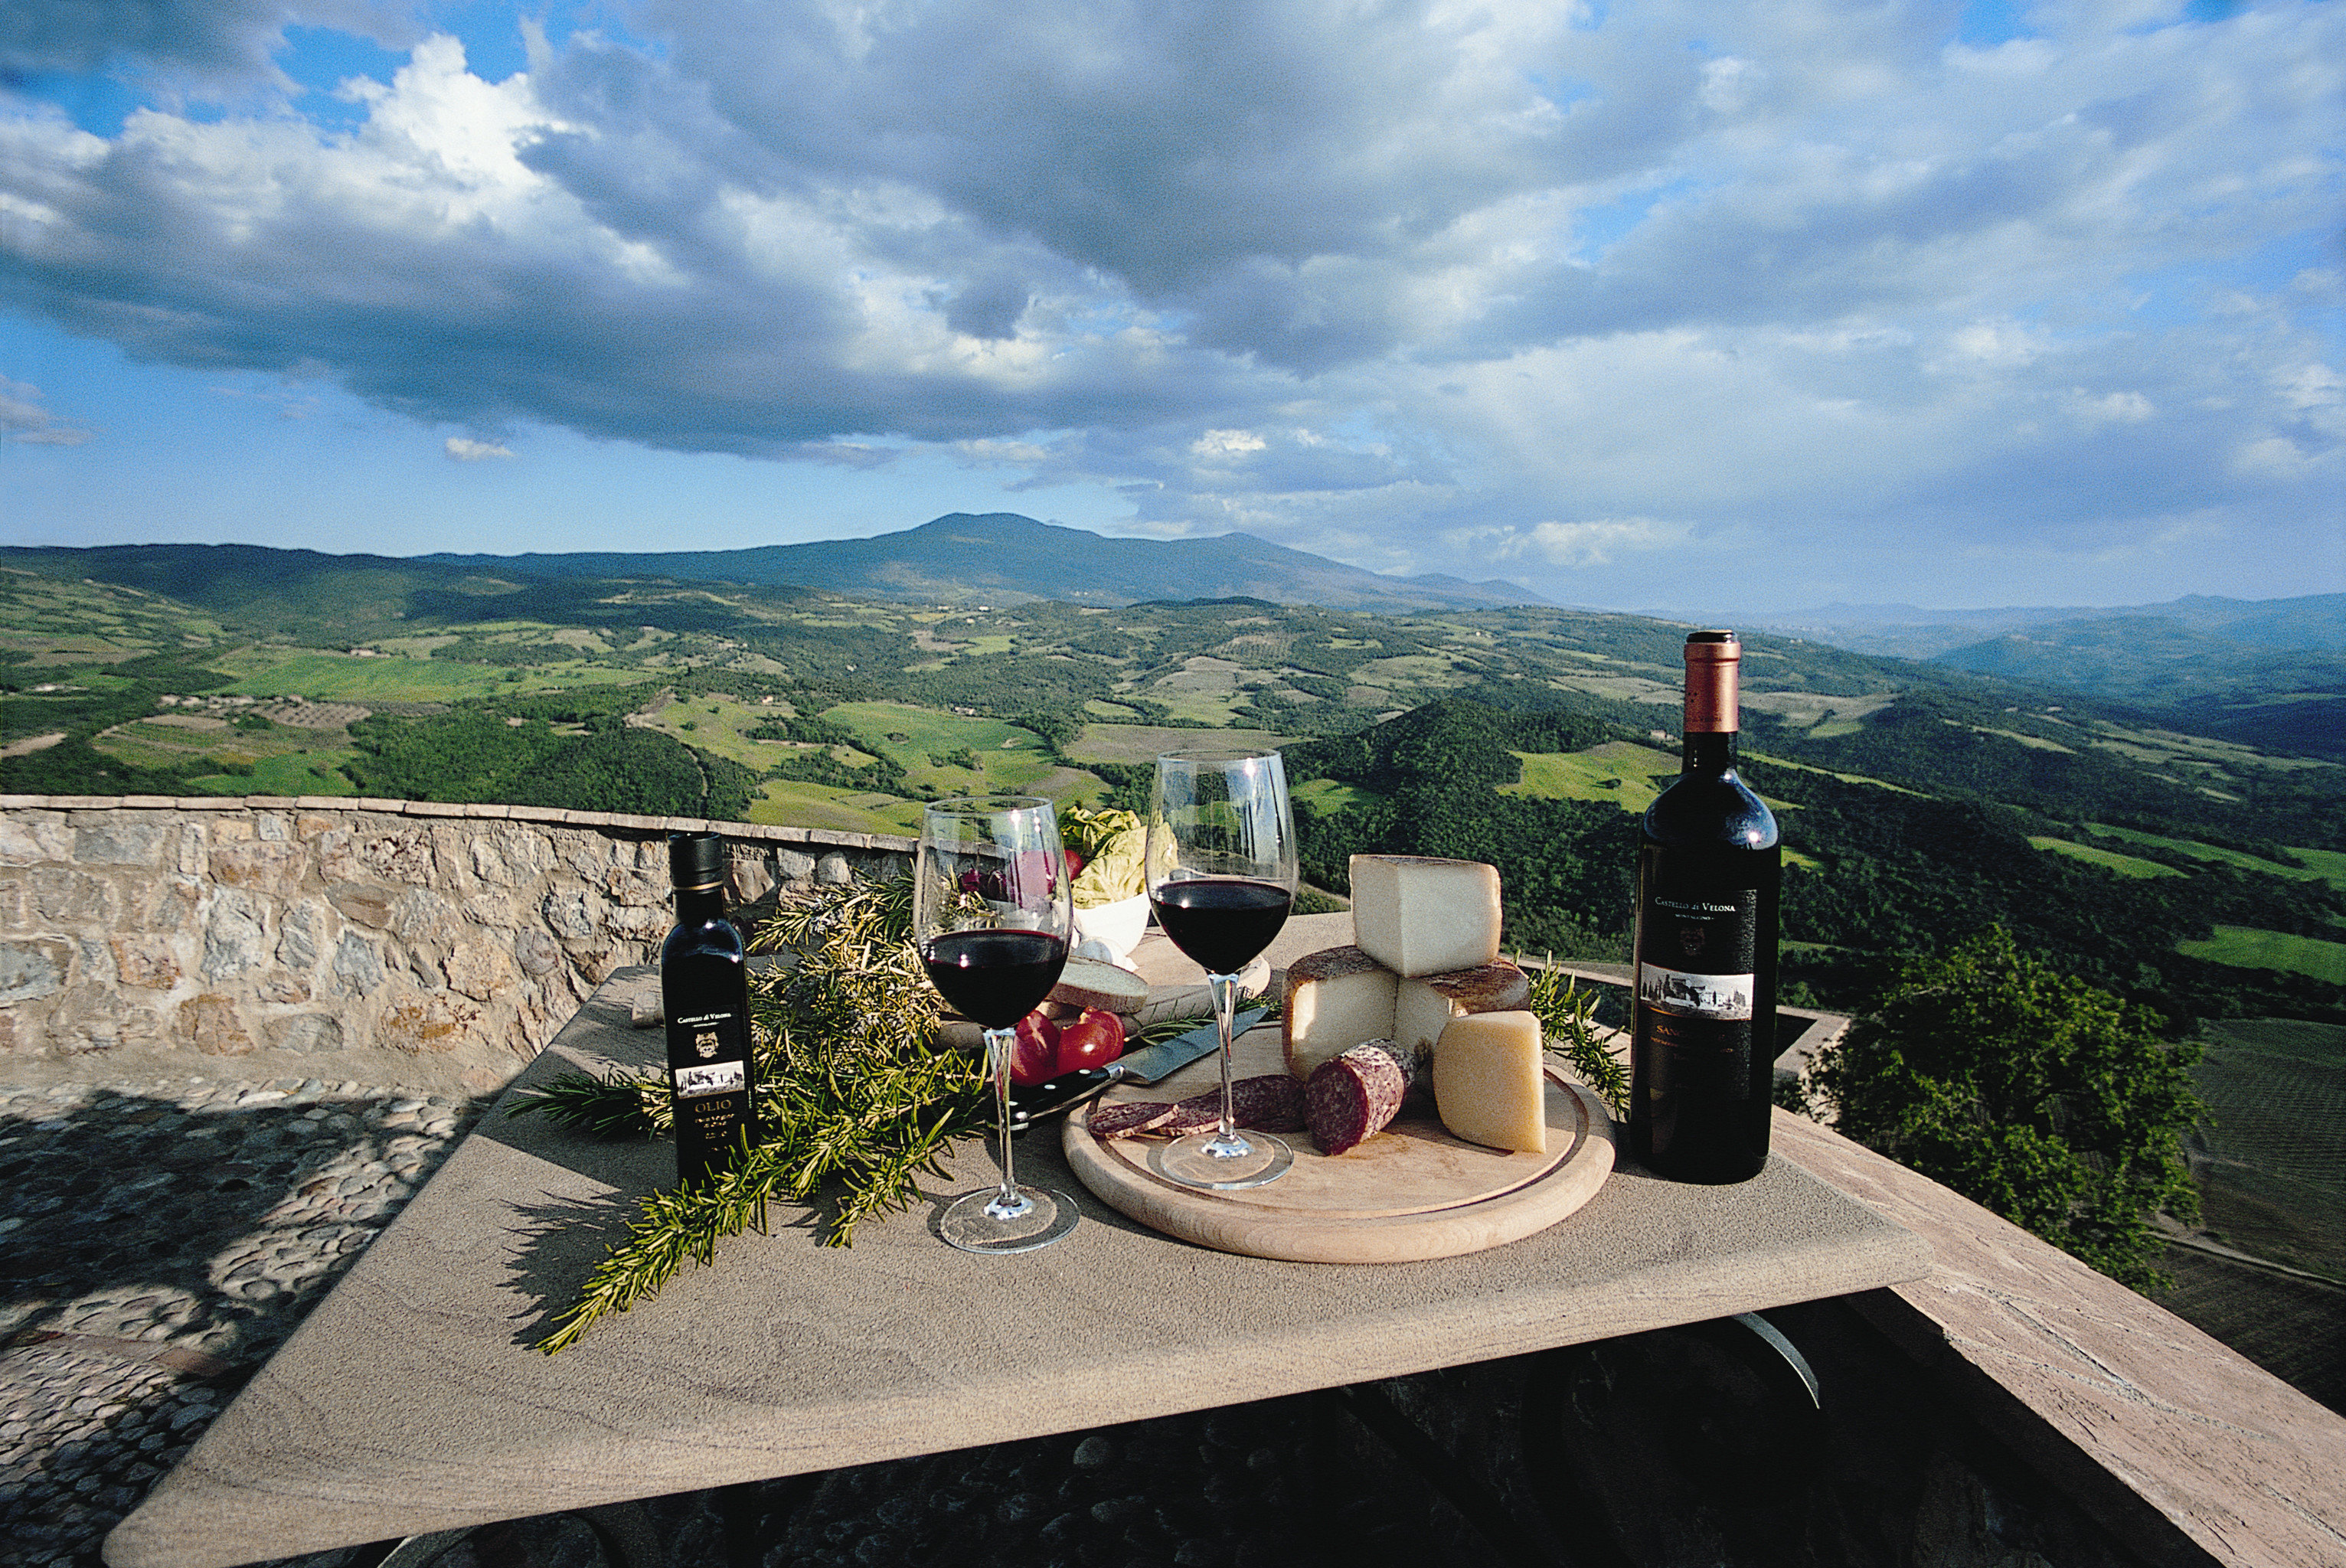 Country Drink Grounds Honeymoon Italy Luxury Romance Romantic Scenic views Trip Ideas sky mountain ground mountain range travel overlooking stone